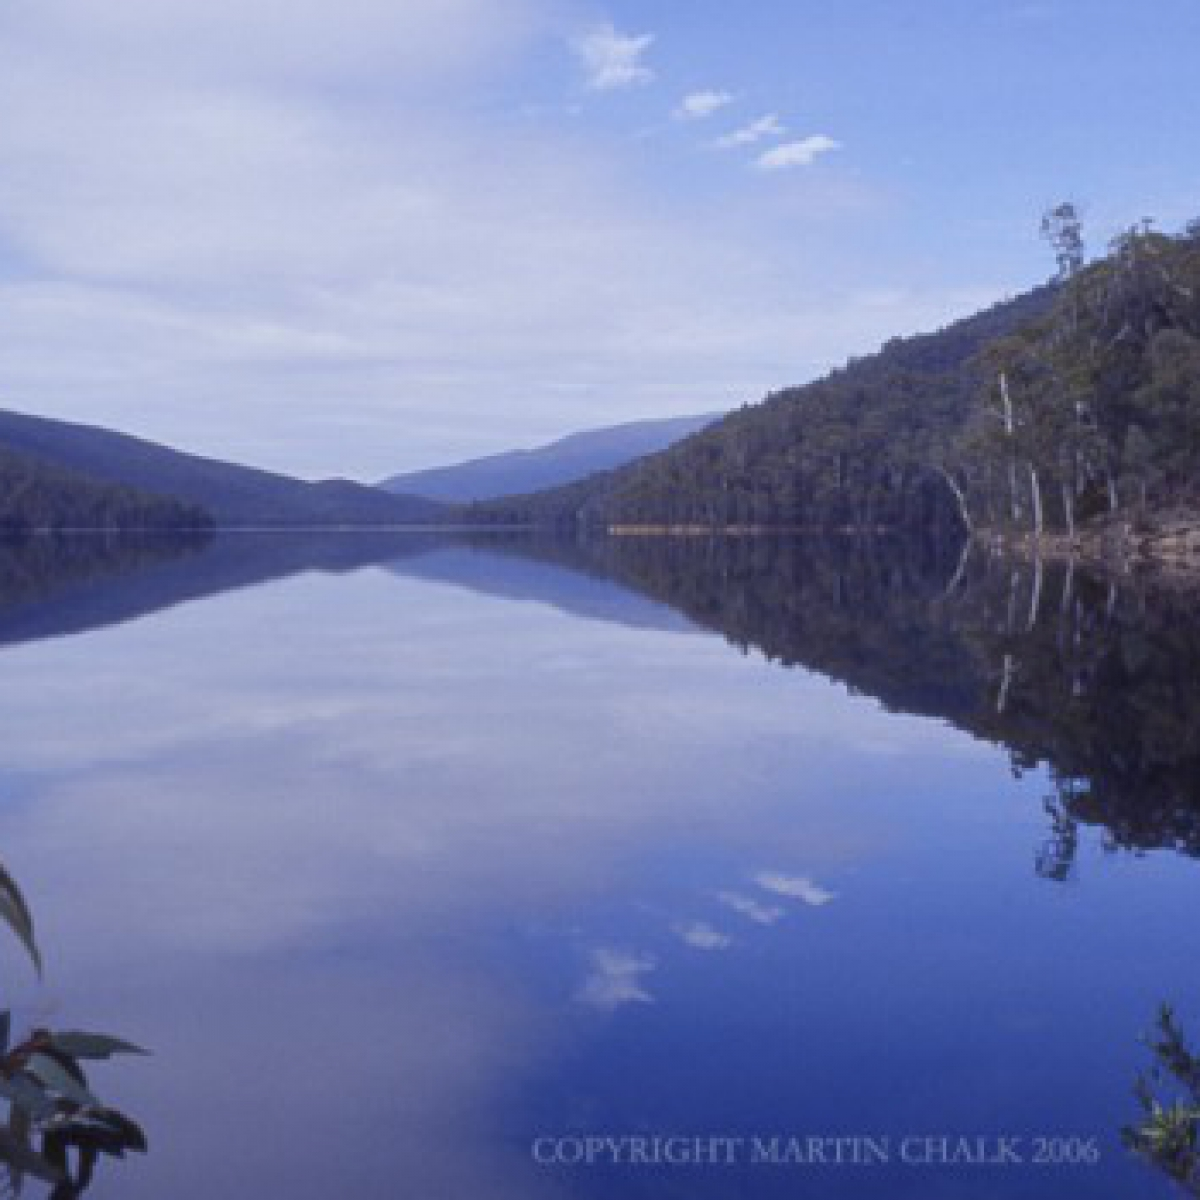 Bimberi Peak from Corin Dam - Namadgi National Park